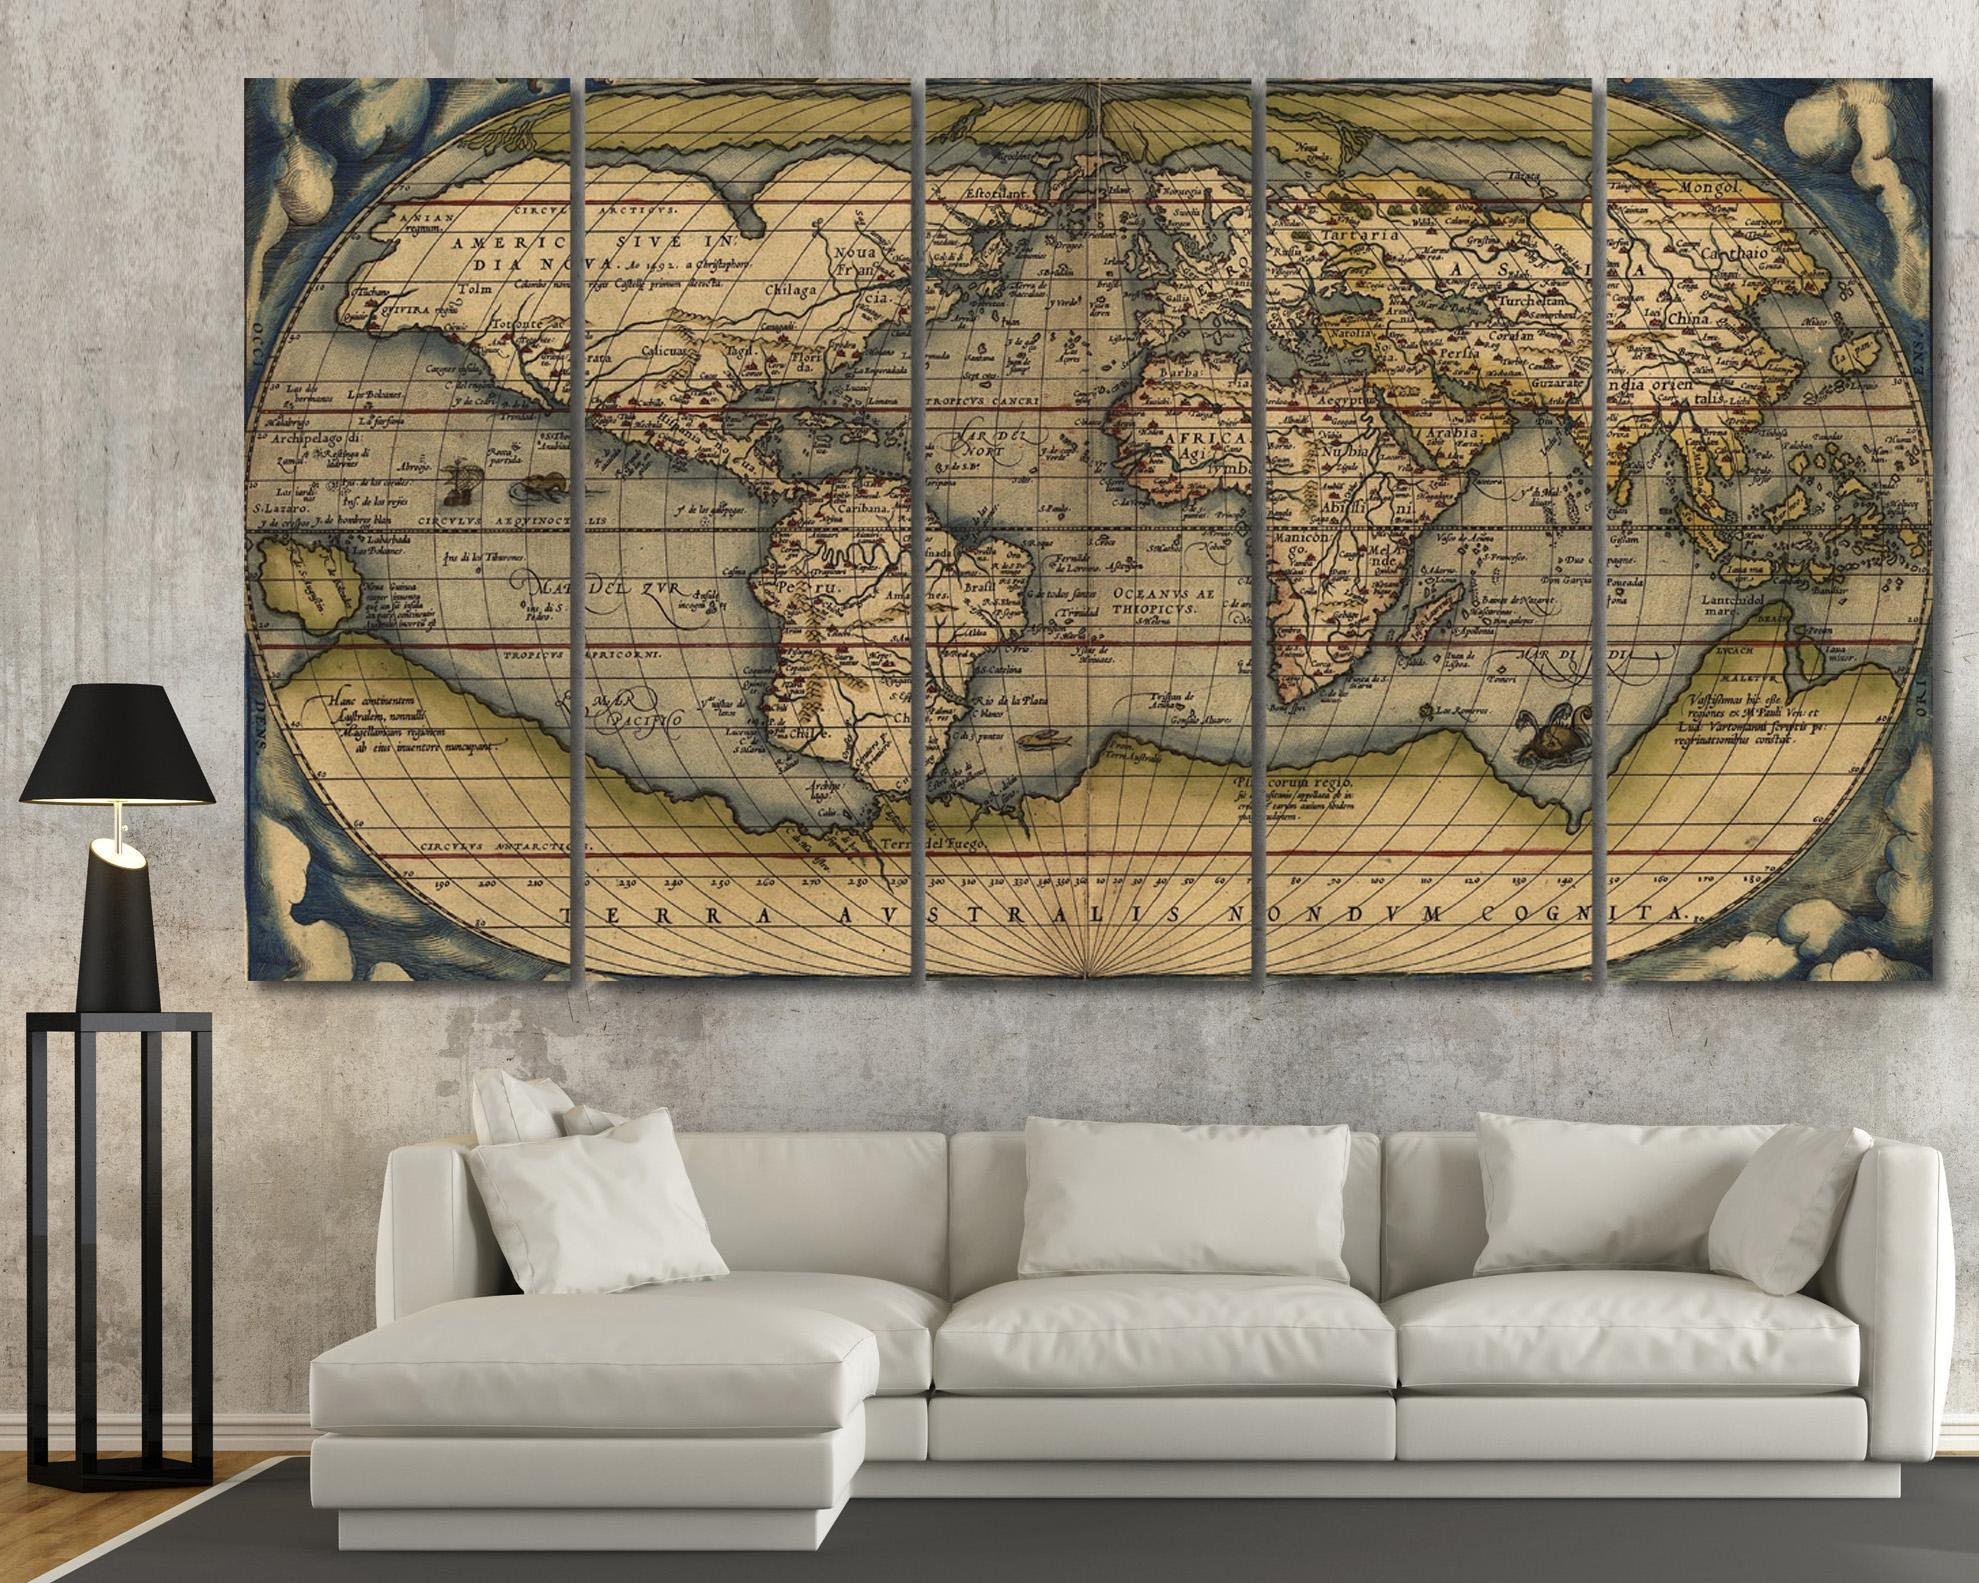 Large Vintage Wall Art Old World Map At Texelprintart For Vintage Map Wall Art (Image 10 of 20)